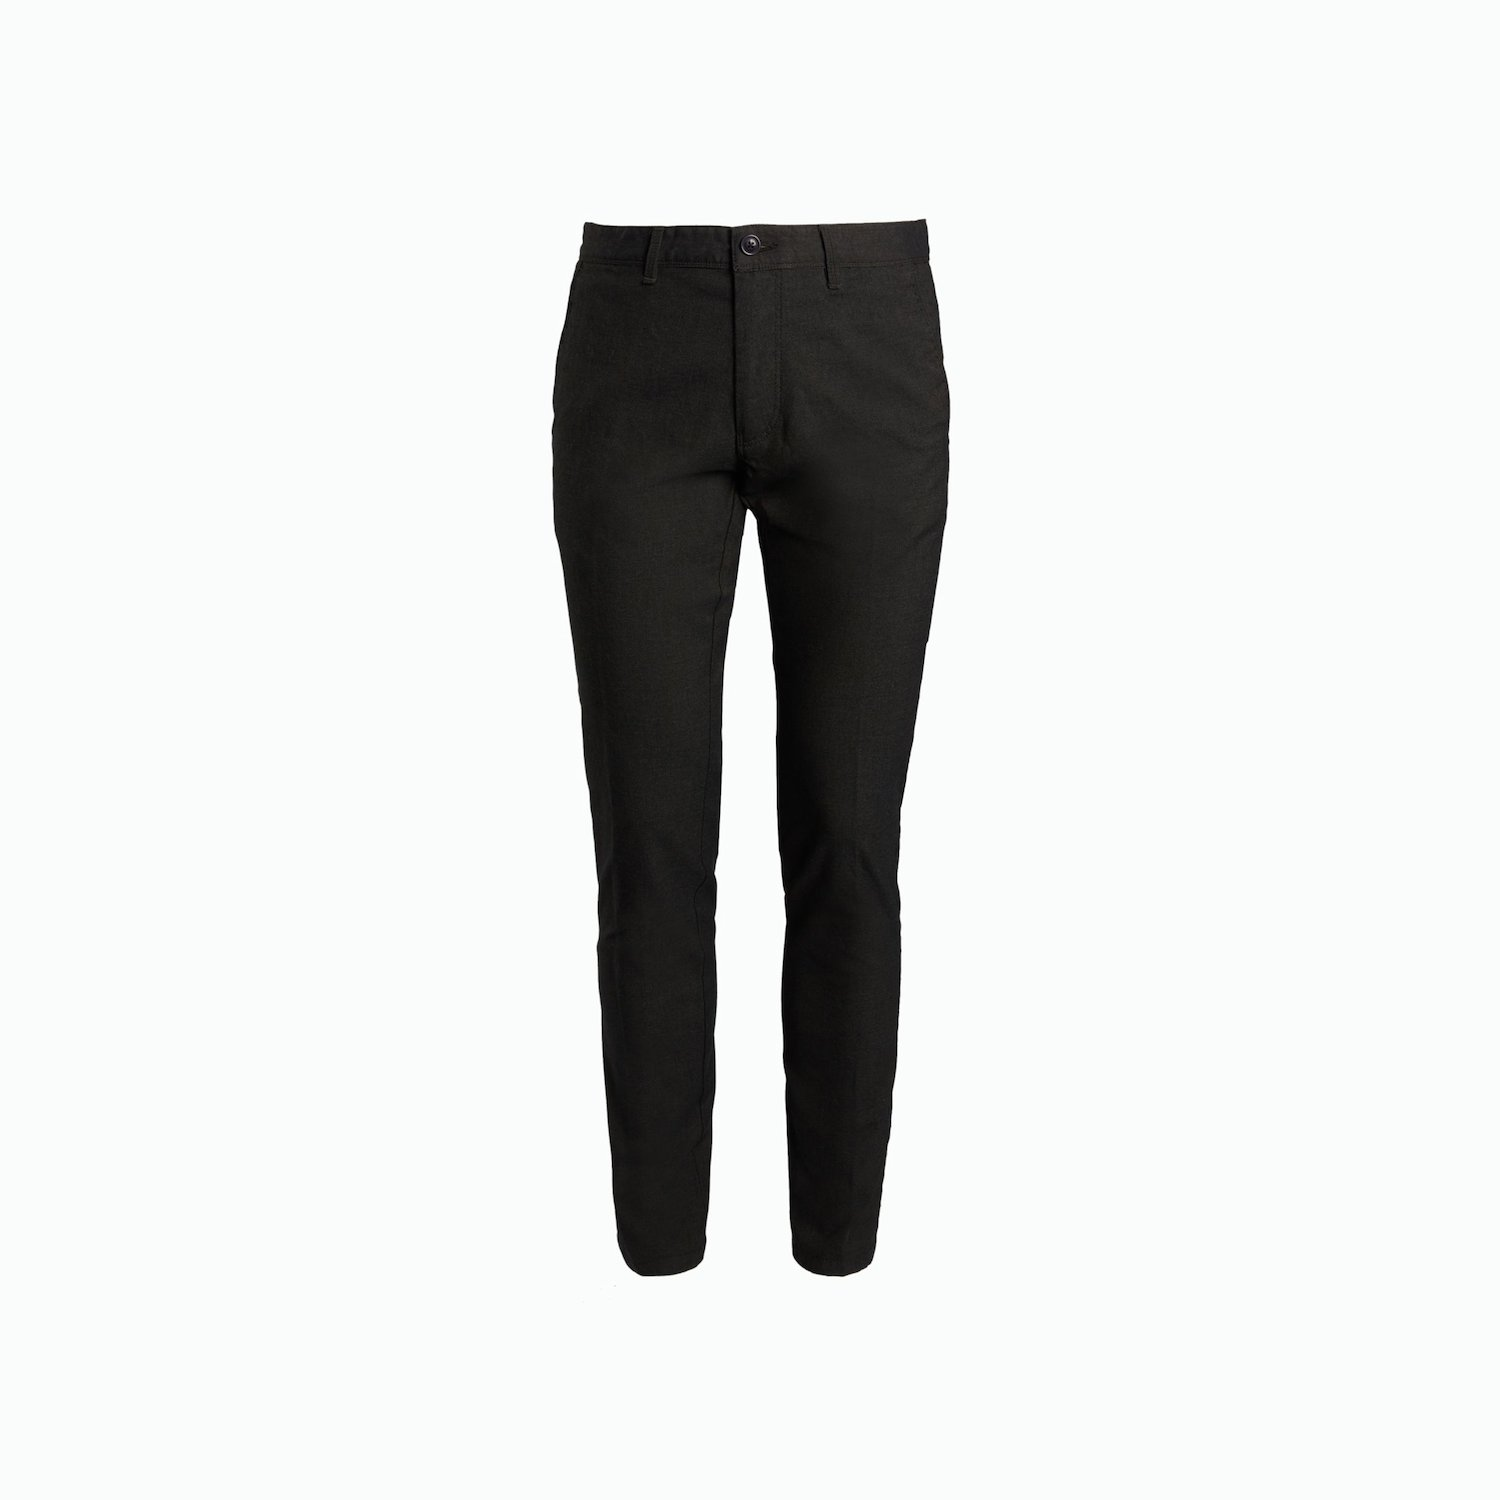 B8 pants - Anthracite